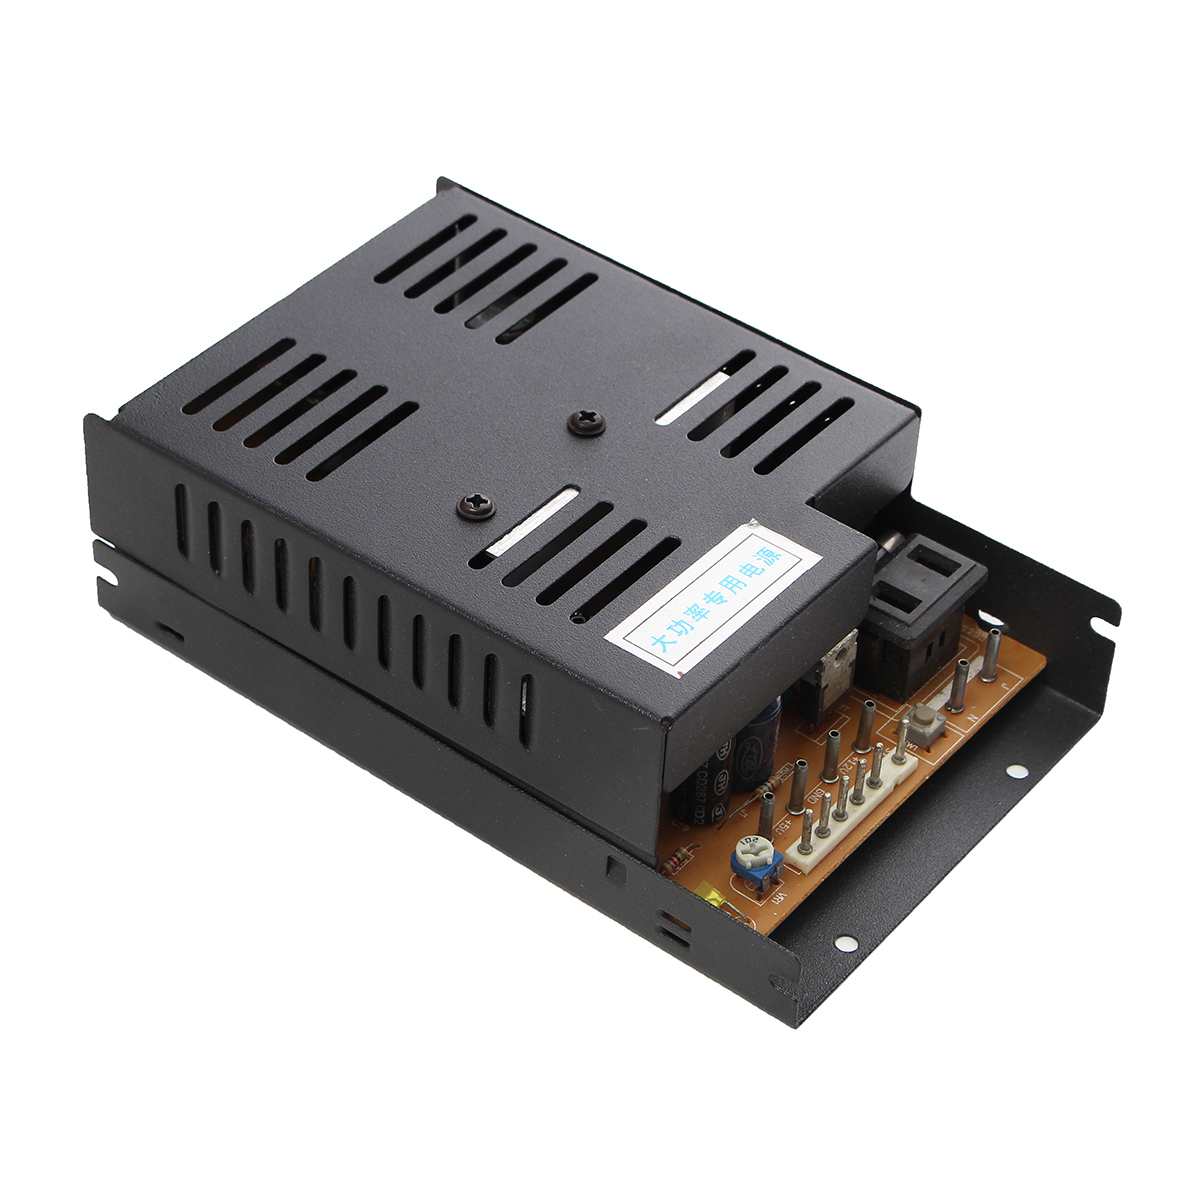 Output 5V/9A 12V/1.5A Switching Power Supply for Jamma arcade / pinball